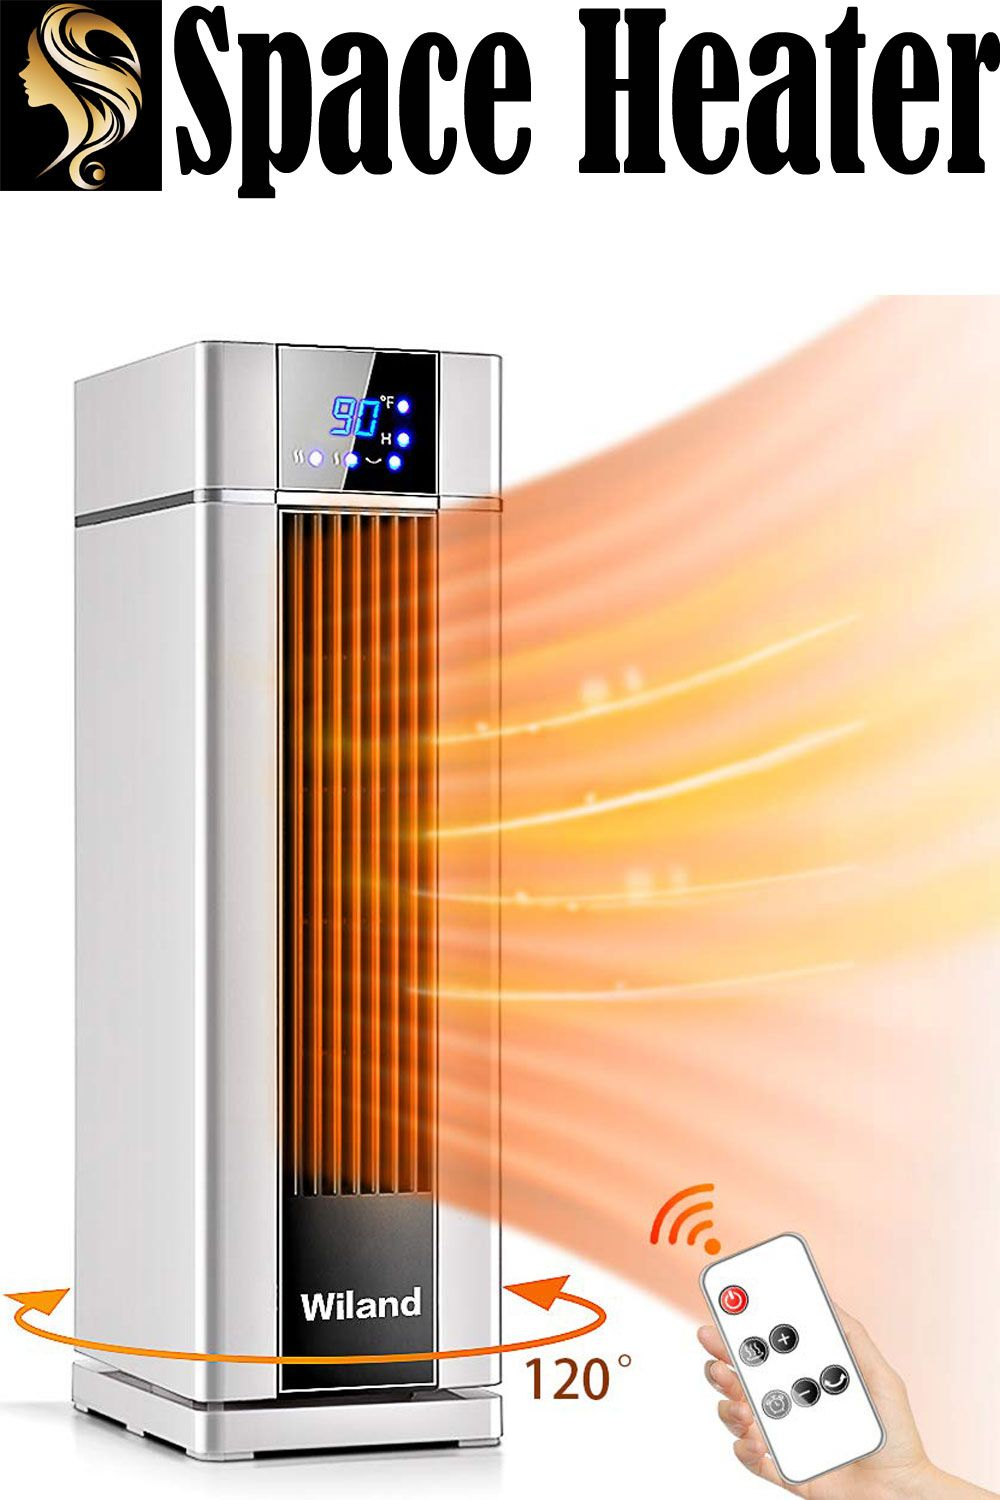 Space Heater With Remote Control Lcd Ceramic Tower Heater 120 Oscillating 1500w Fast Homeandkitchen Pressurecooker Steamer In 2020 Space Heater Heater Tower Heater